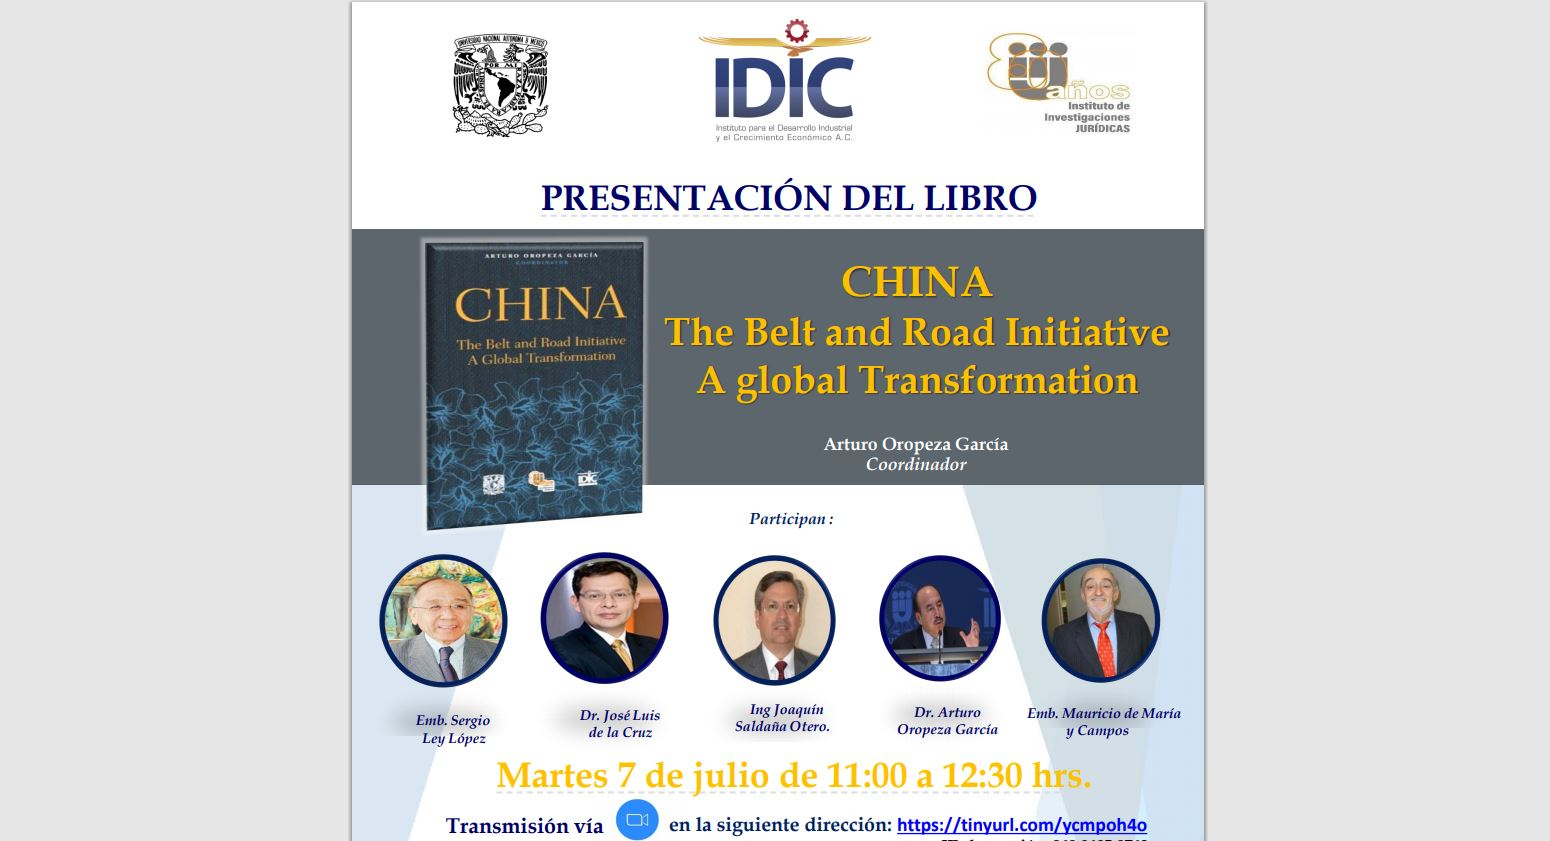 china the belt and road initiative arturo oropeza idic iij unam poster horiz